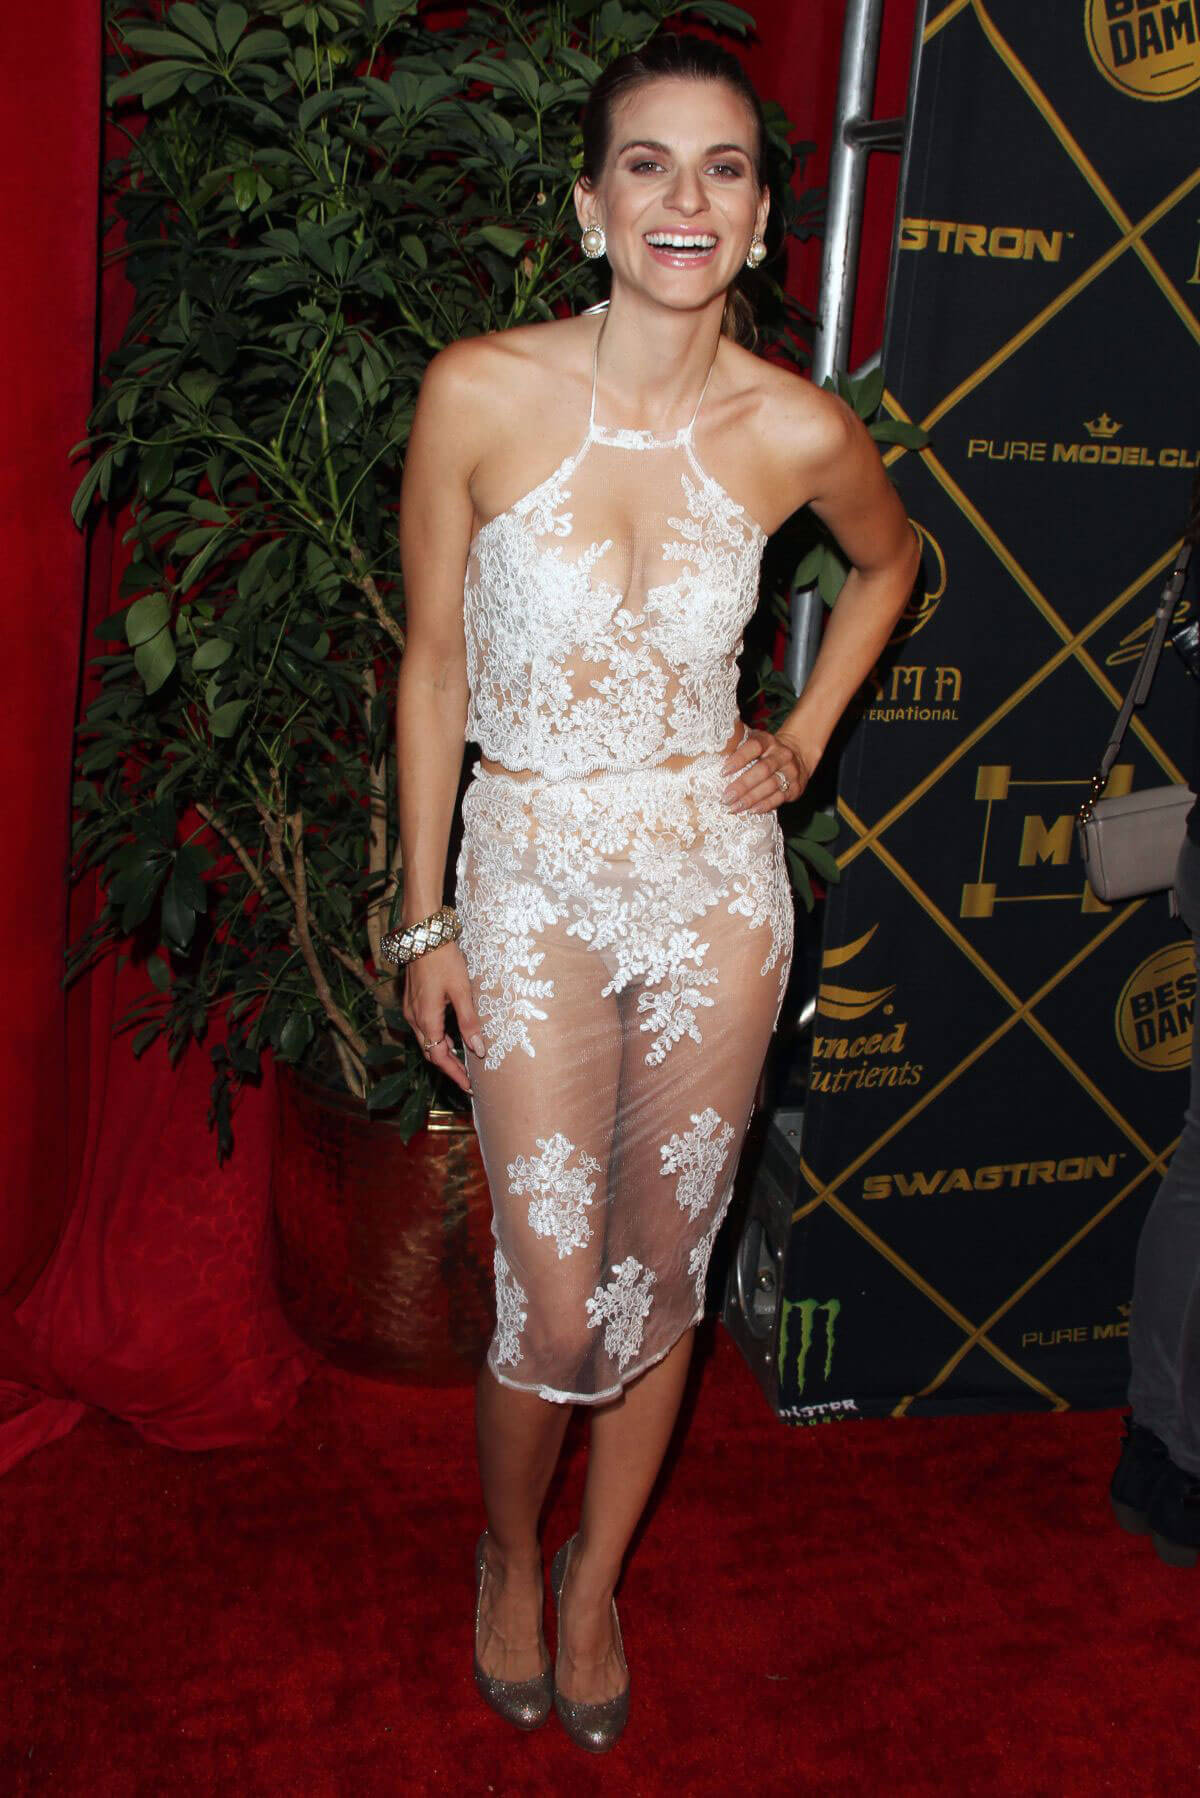 Rachel McCord at 2016 Maxim Hot 100 Party in Los Angeles